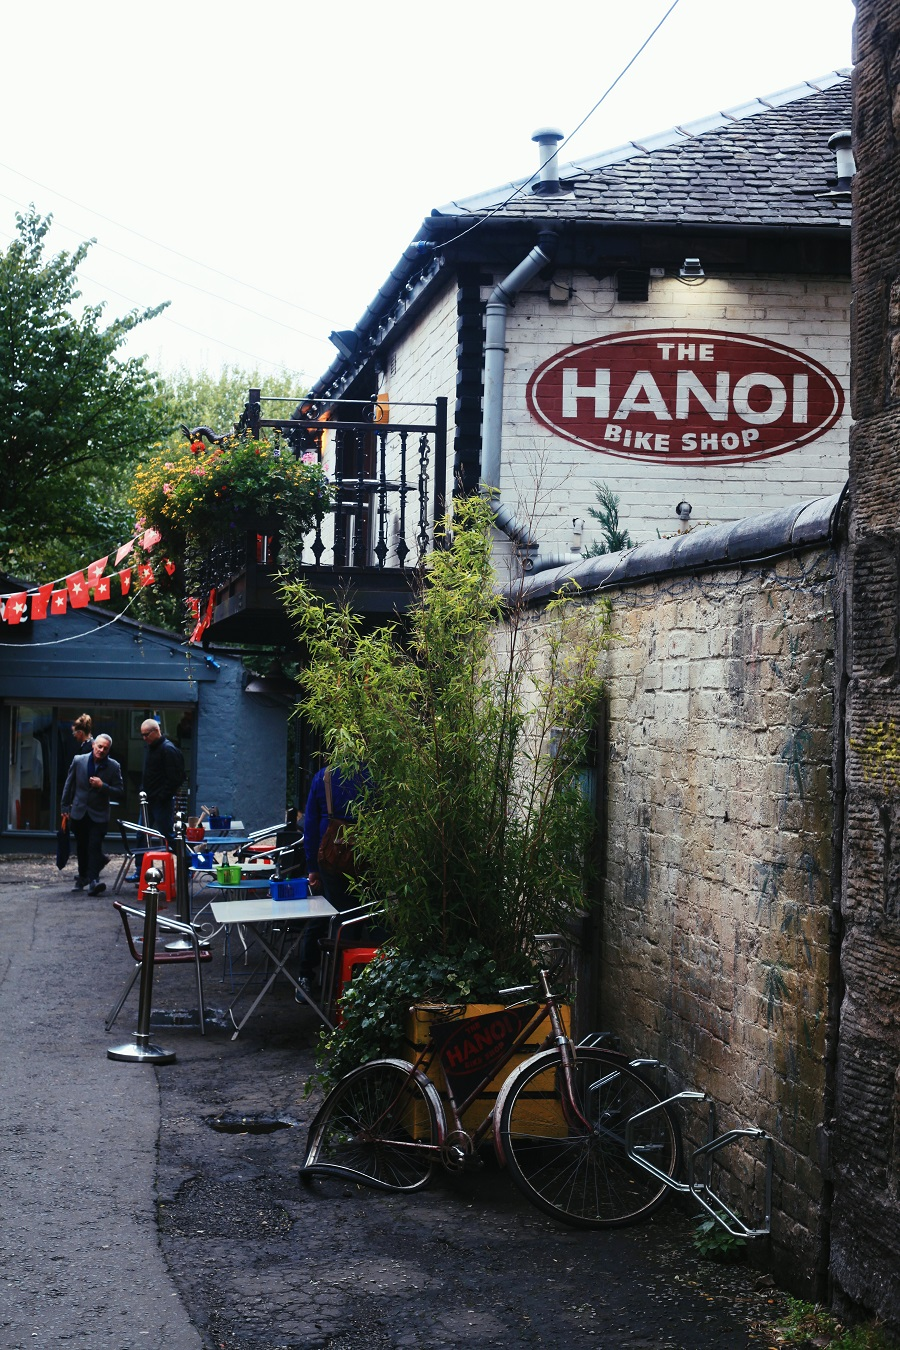 Hanoi Bike Shop Glasgow - restaurant